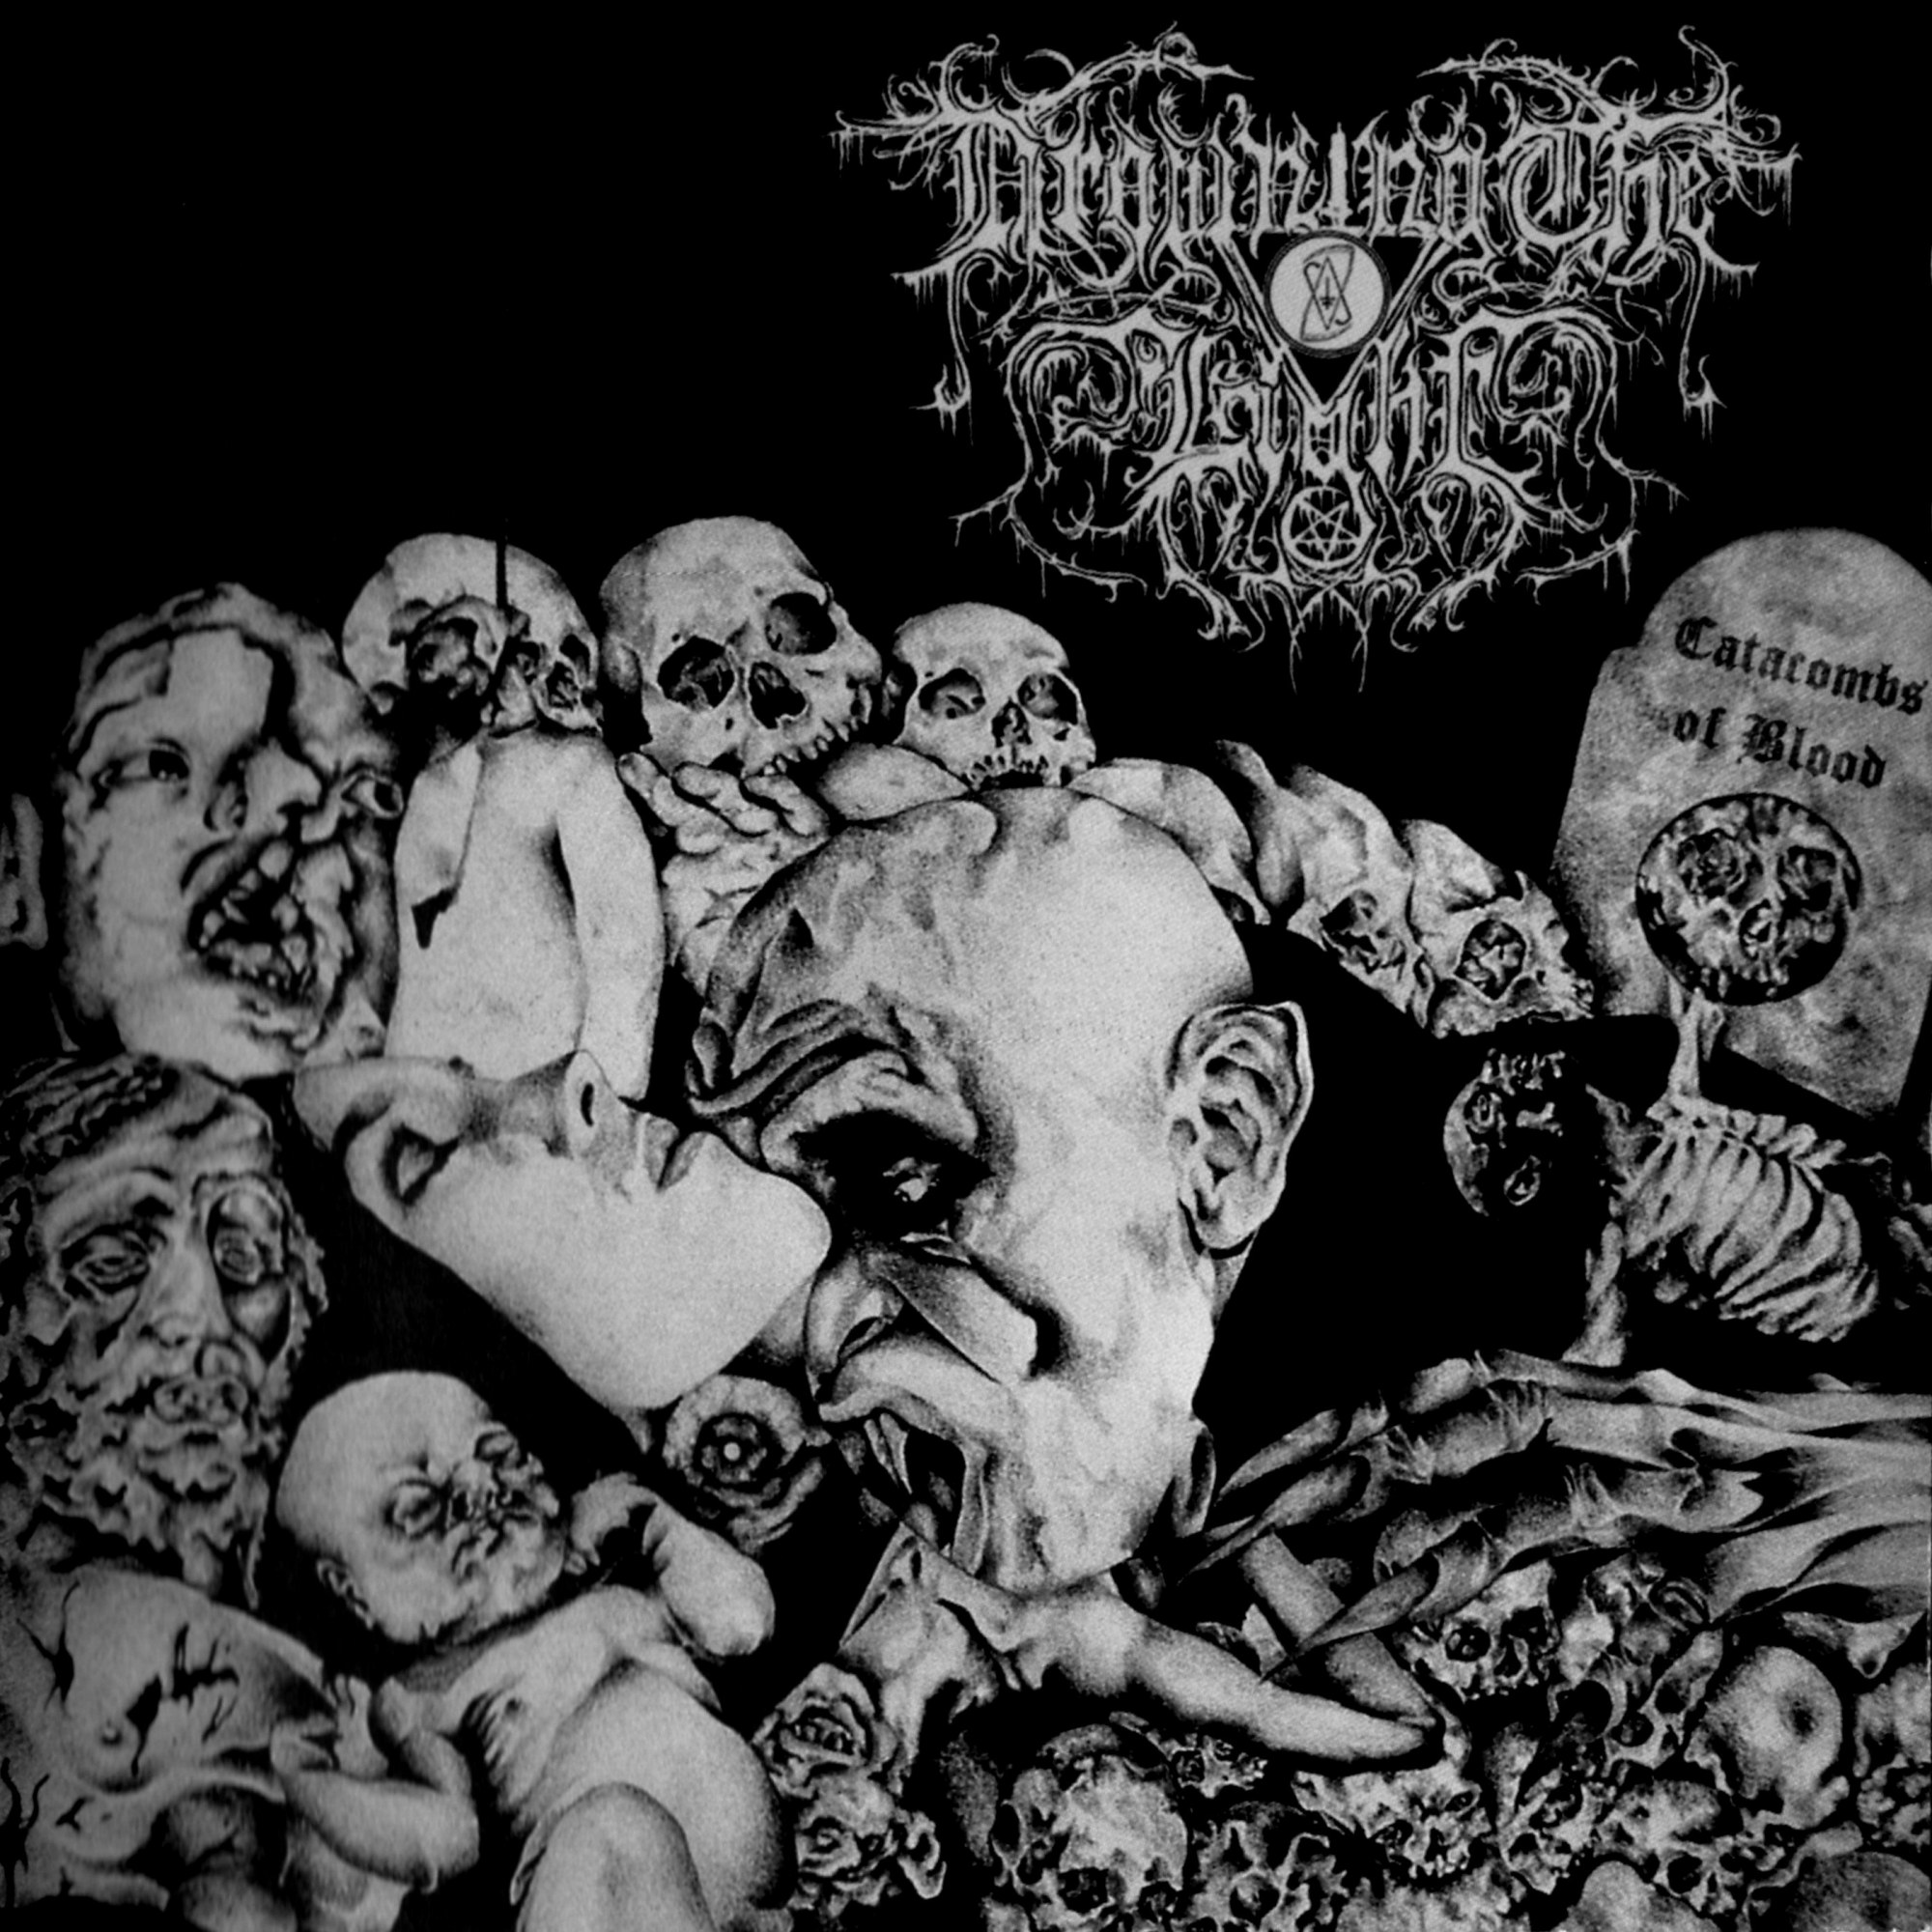 Review for Drowning the Light - Catacombs of Blood